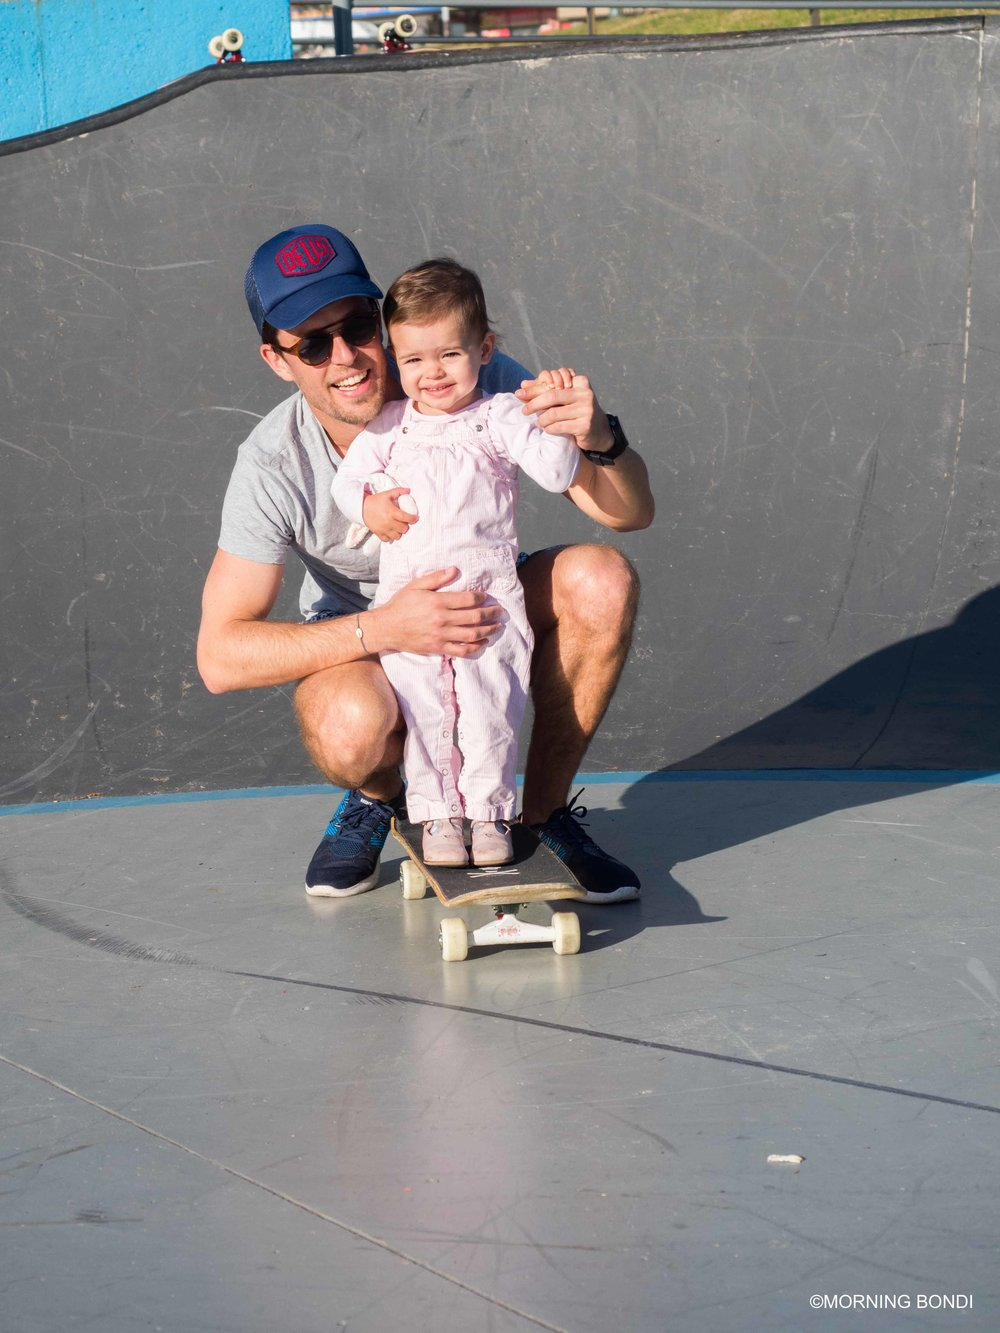 Charlotte & I trying skateboard for the first time (Thanks for the shot Luke!)